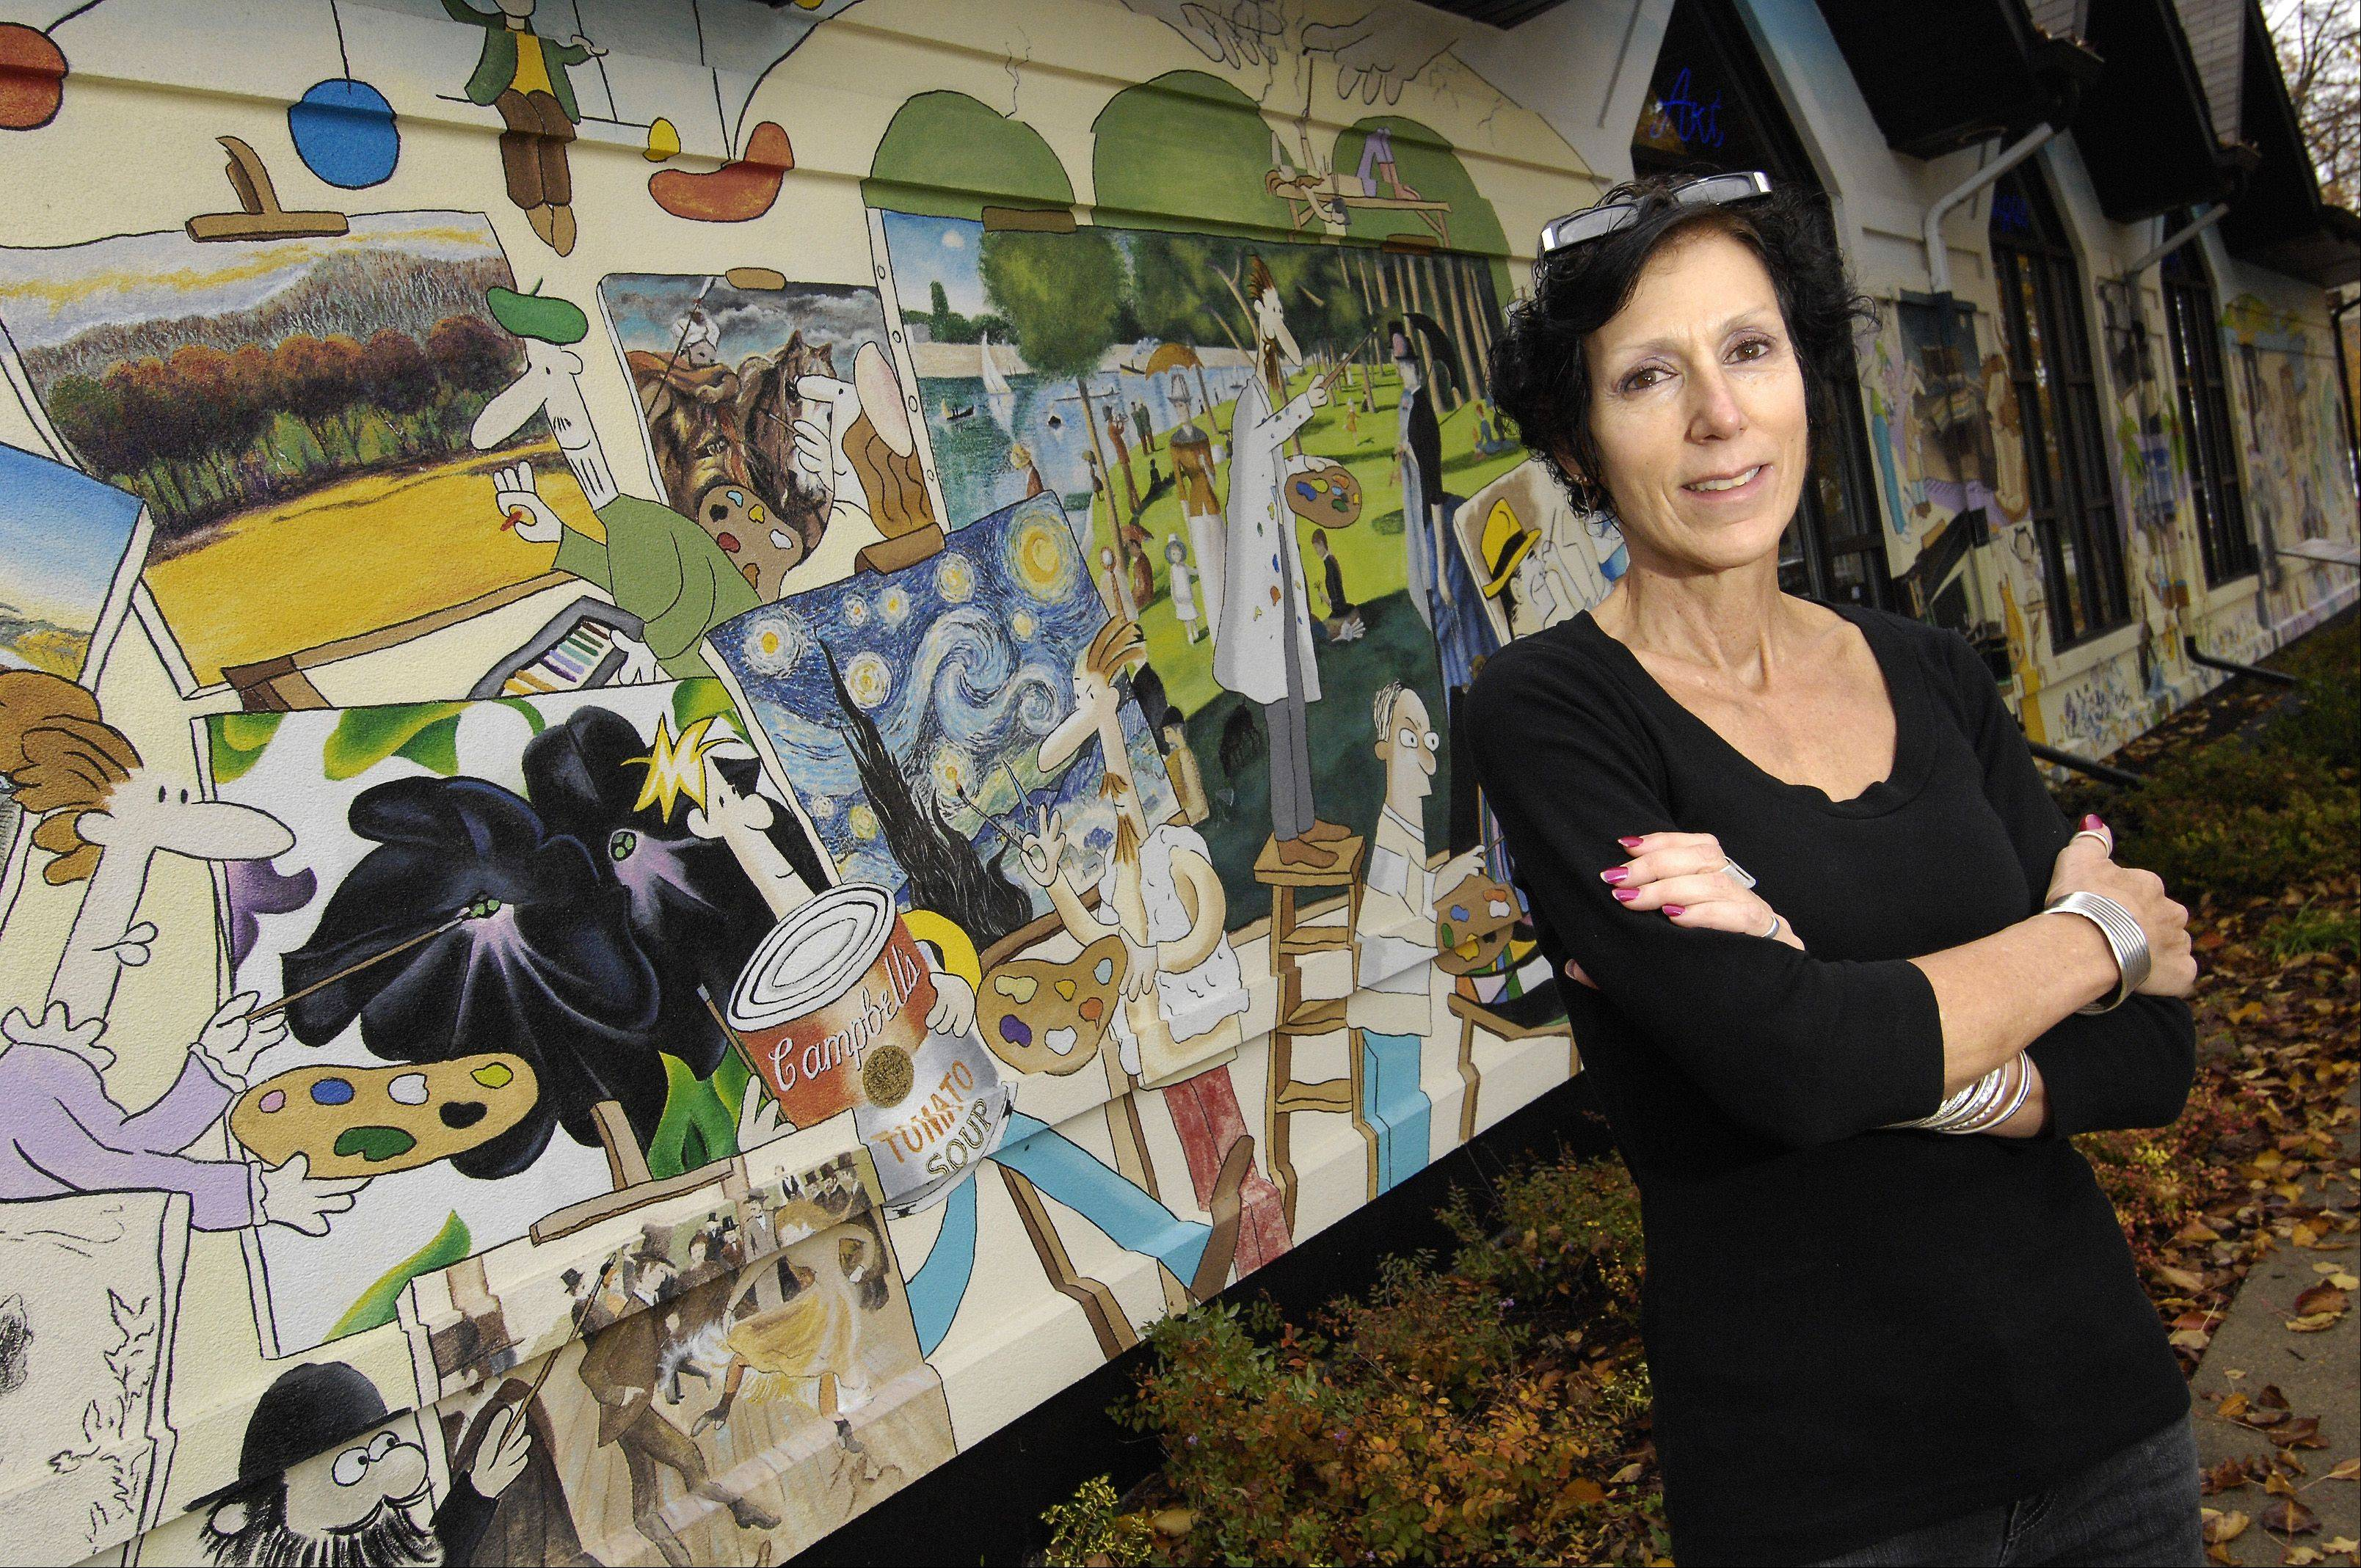 Debbie Venezia, executive director of the Naperville Art League, looks forward to increasing the league's connections with the community as the group celebrates its 50th anniversary.